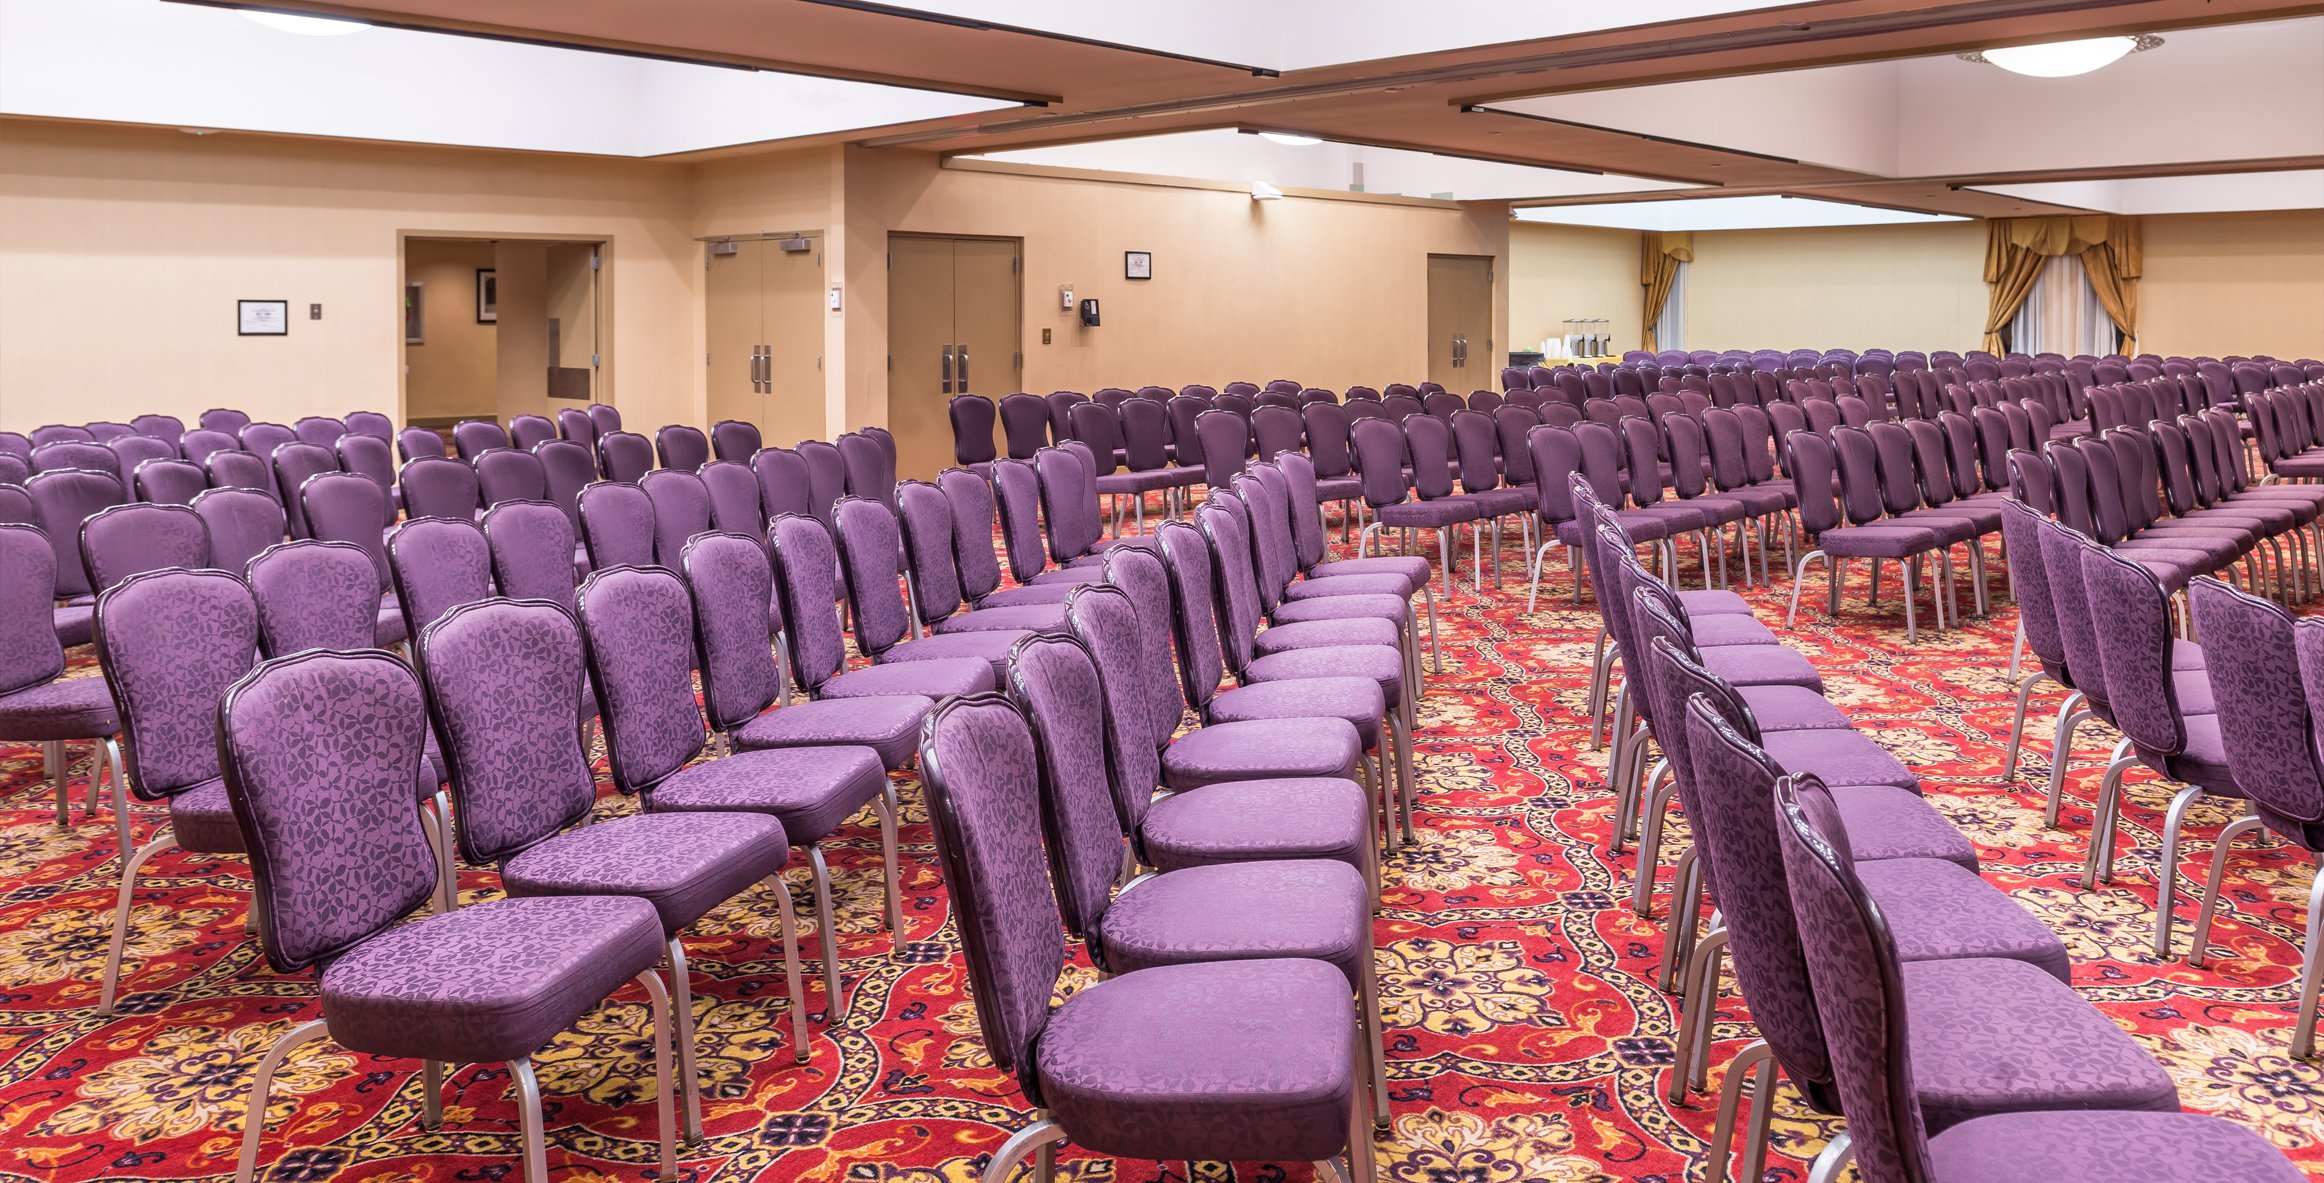 THE HAWTHORNE INN PROVIDES OVER 10,000 SQUARE FEET OF MEETING AND EVENT SPACE IN DOWNTOWN WINSTON-SALEM